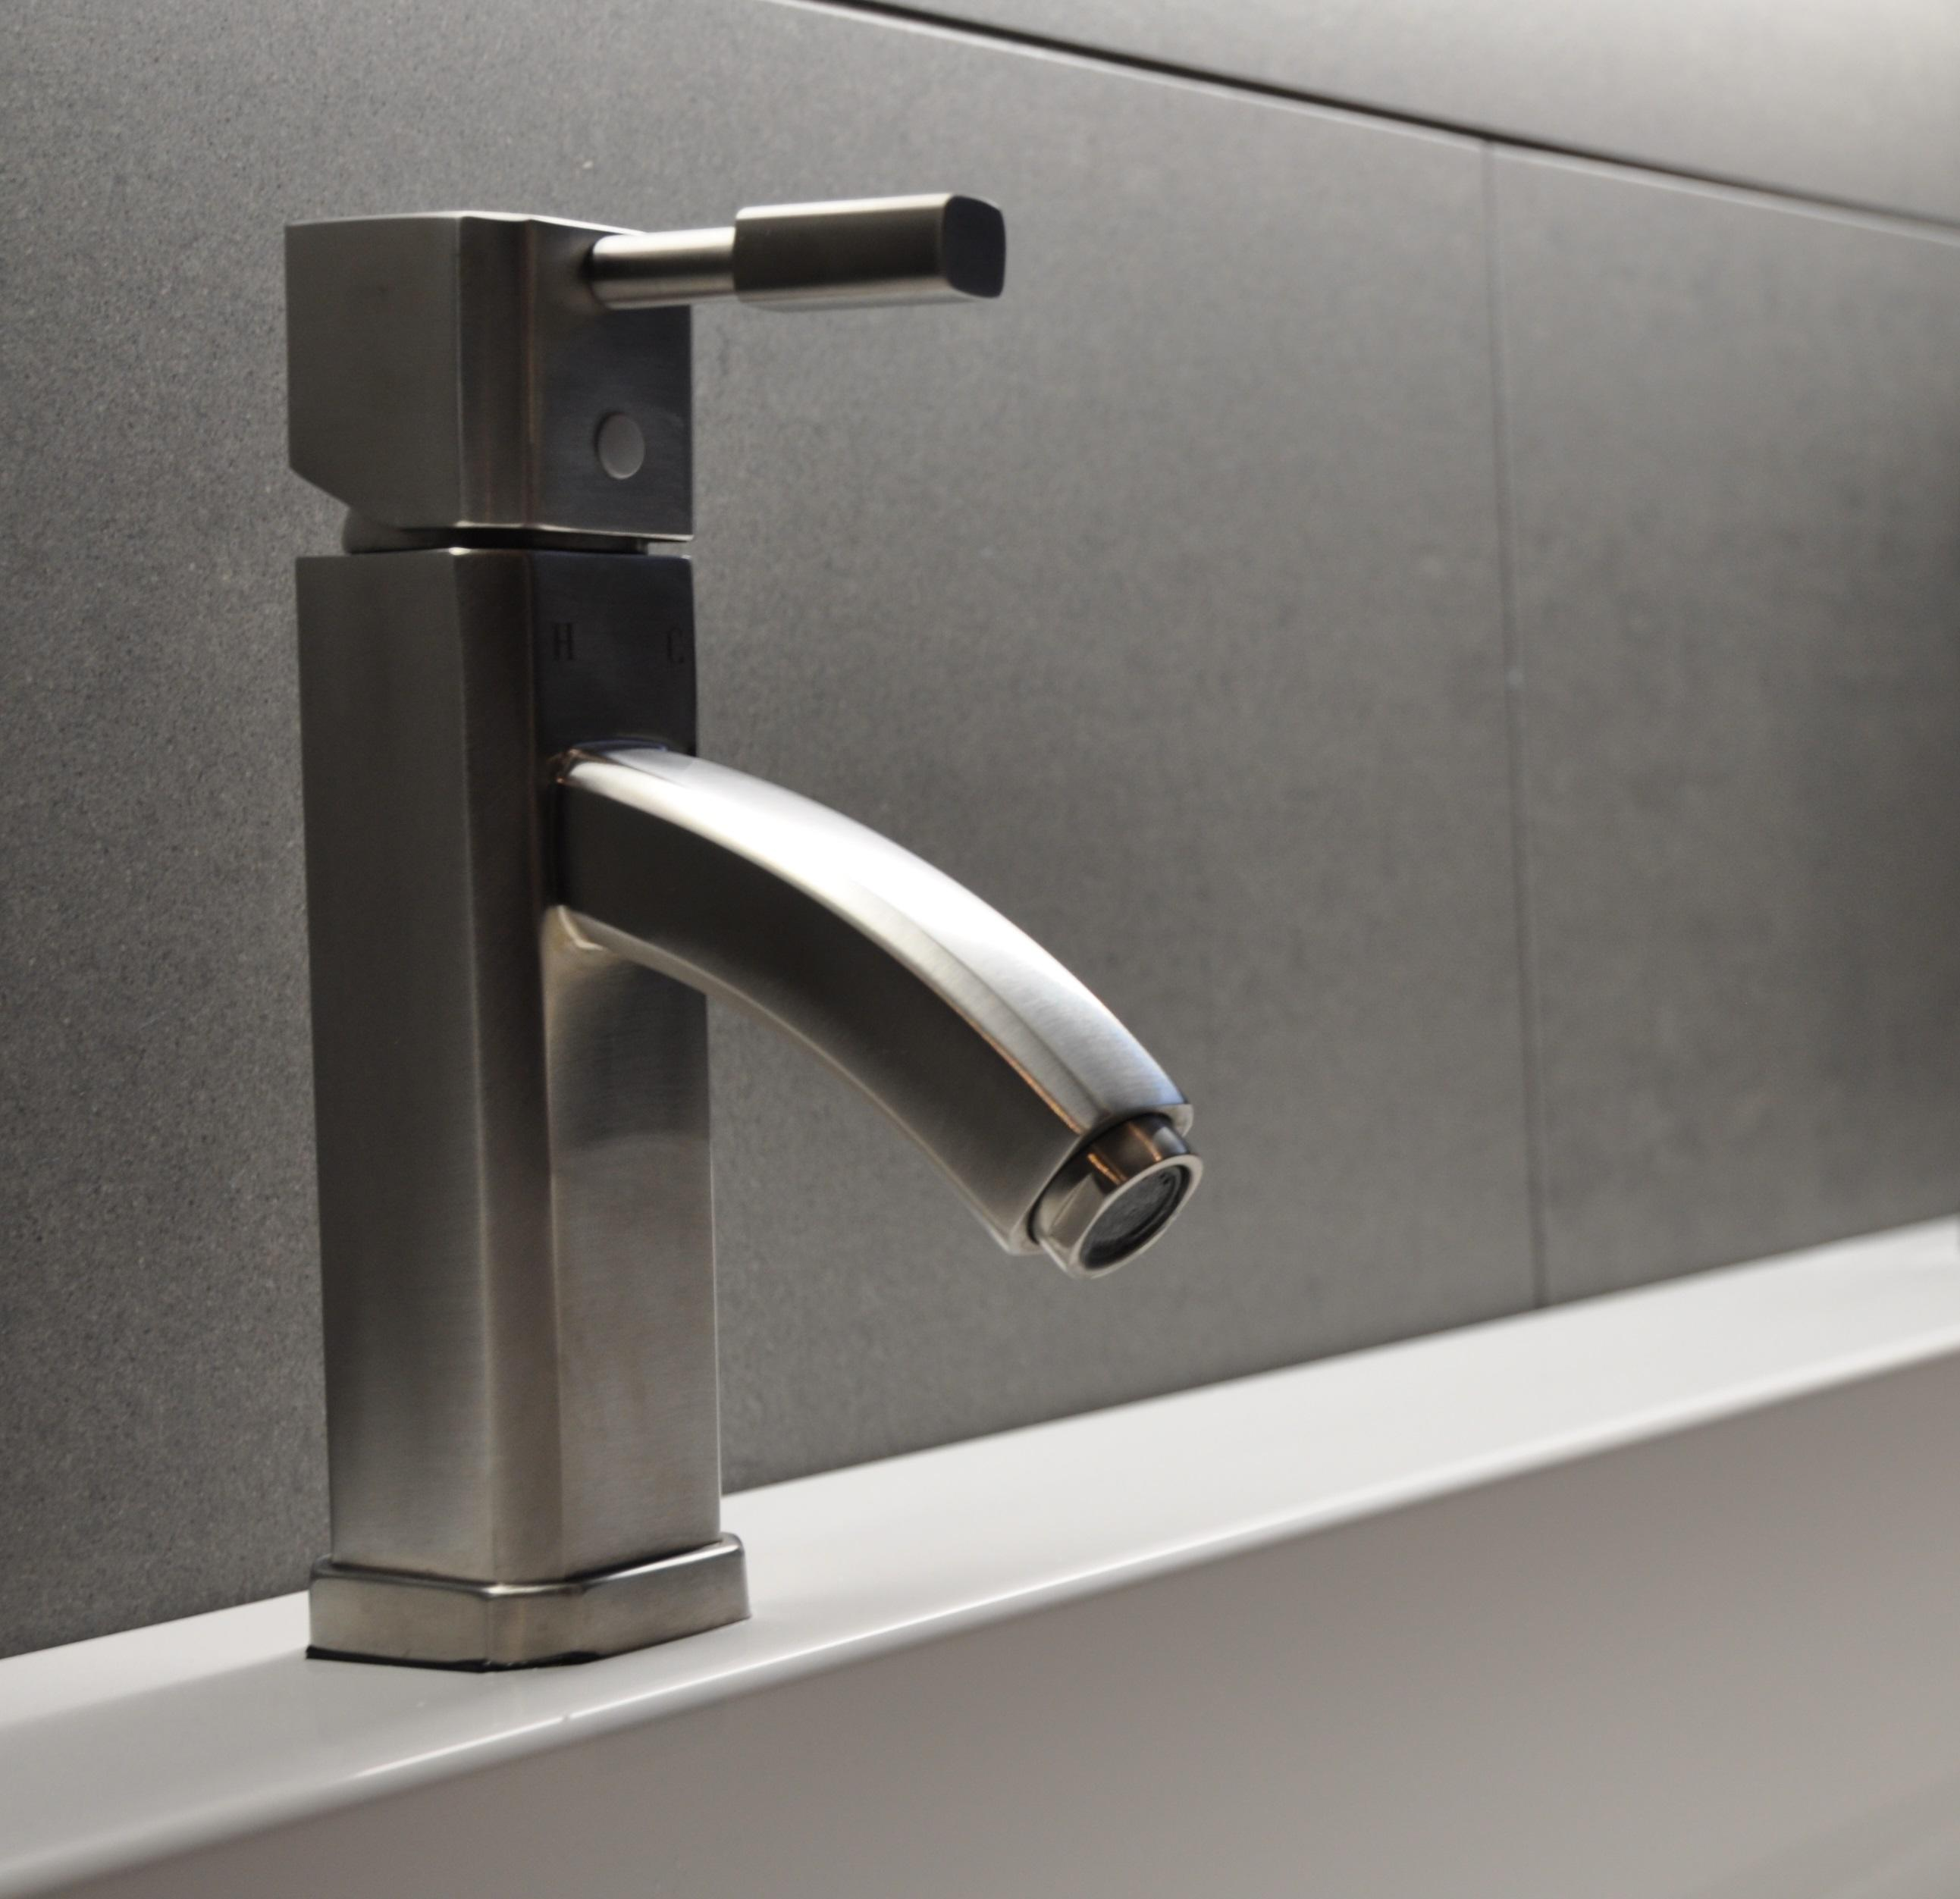 basin_stainless_steel_tap_bathroom_cloakroom_kitchen_luxury_outdoor_modern_high_quality_kent_uk